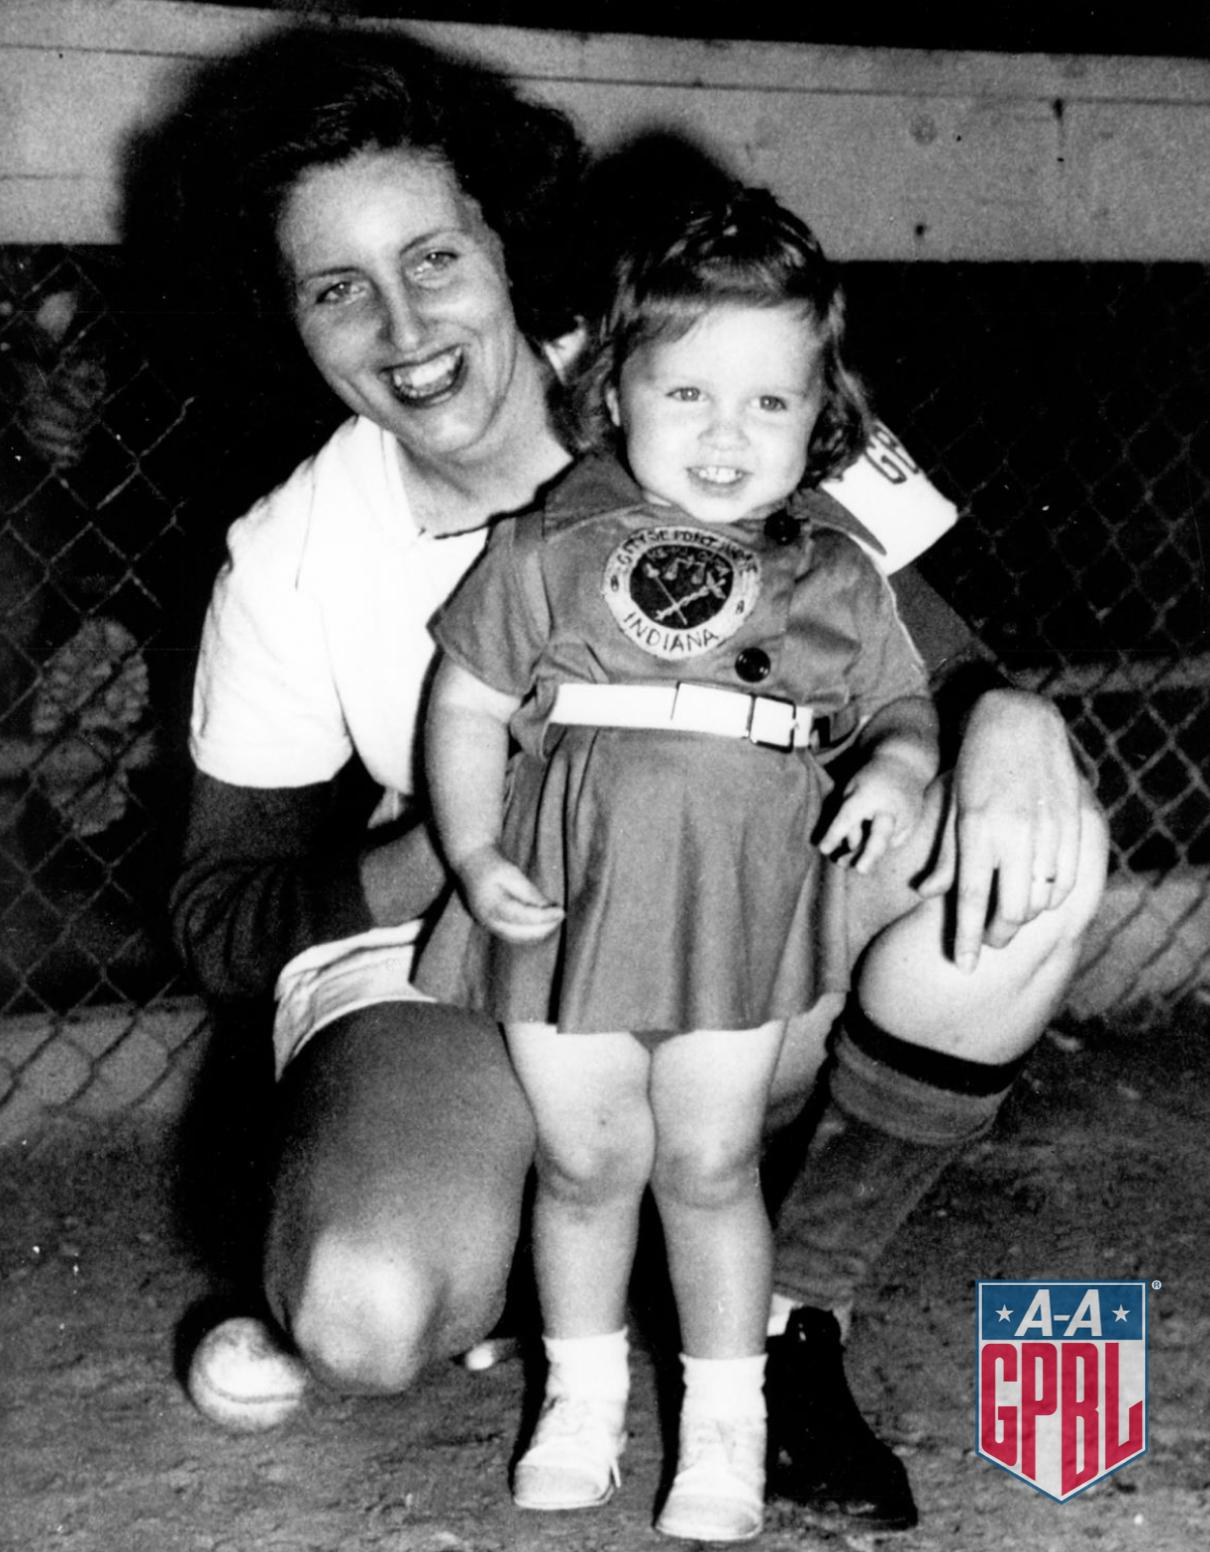 #OTD in 1948 - After pitching until she was 4 months pregnant, Dottie Wiltse Collins decides to go on maternity leave with her first child, Patricia. Dottie went 13-8, 2.01 ERA in 1948. Patty was born on December 22nd of that year. Dottie would return in 1950 for her final season https://t.co/NEmjtBMfG9